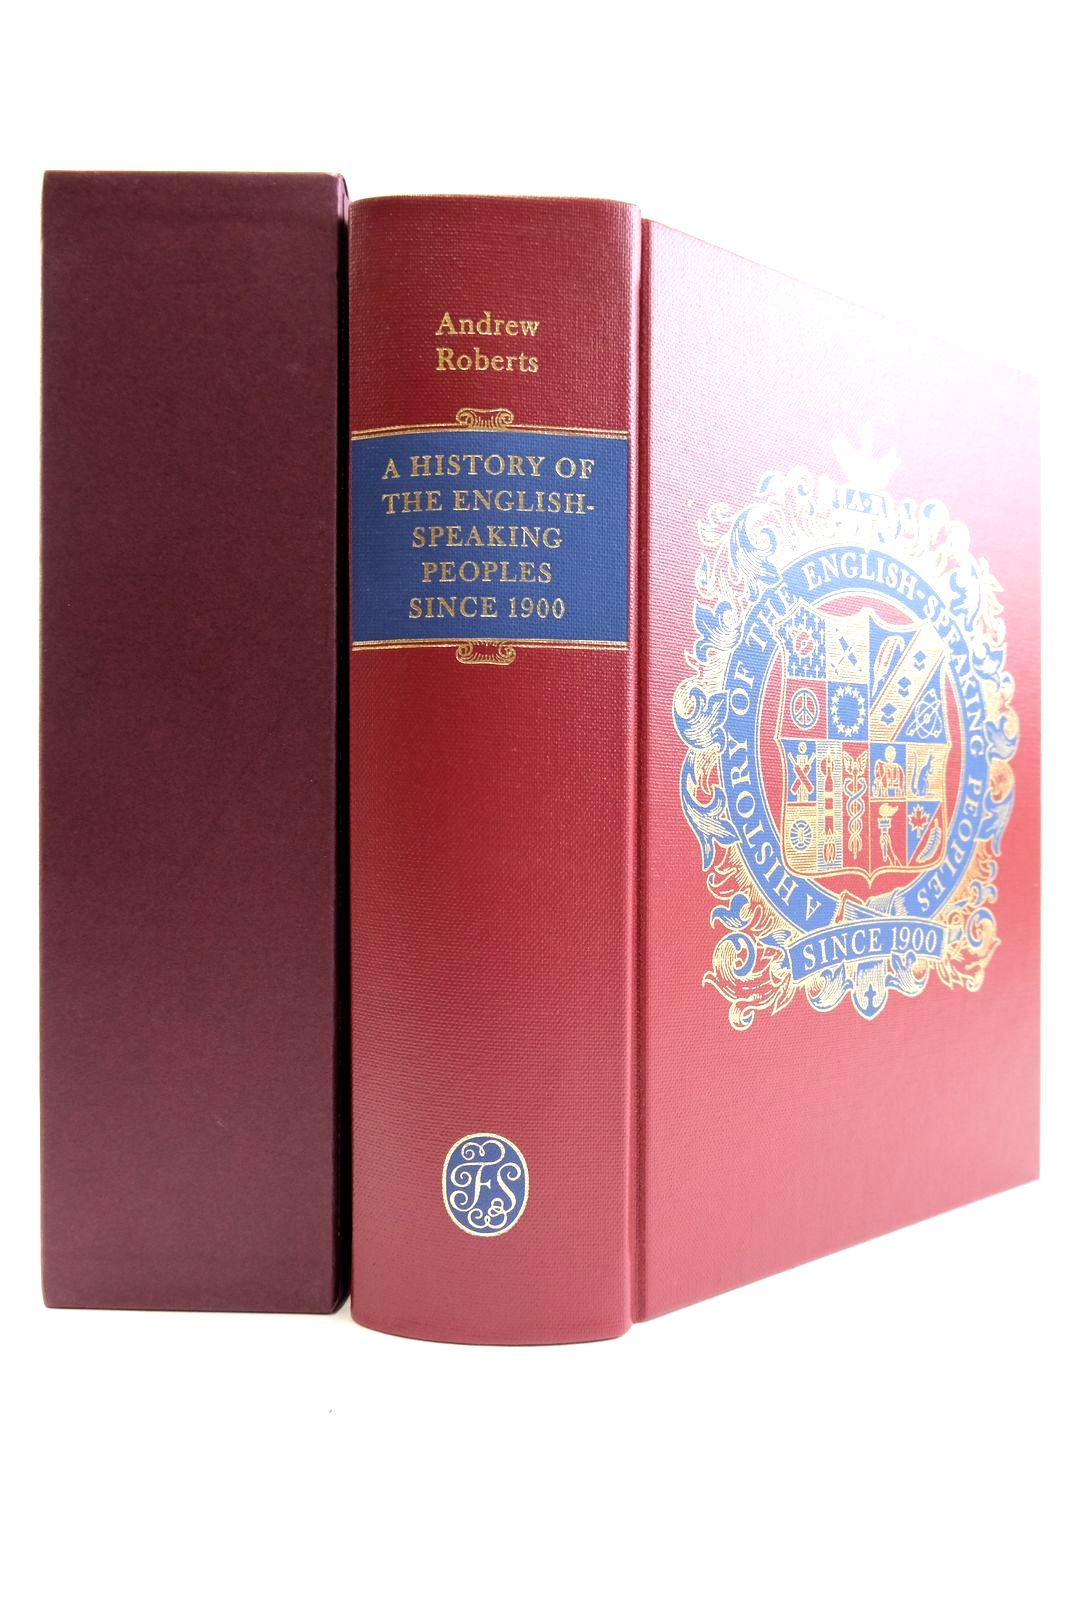 Photo of A HISTORY OF ENGLISH-SPEAKING PEOPLES SINCE 1900- Stock Number: 2133234